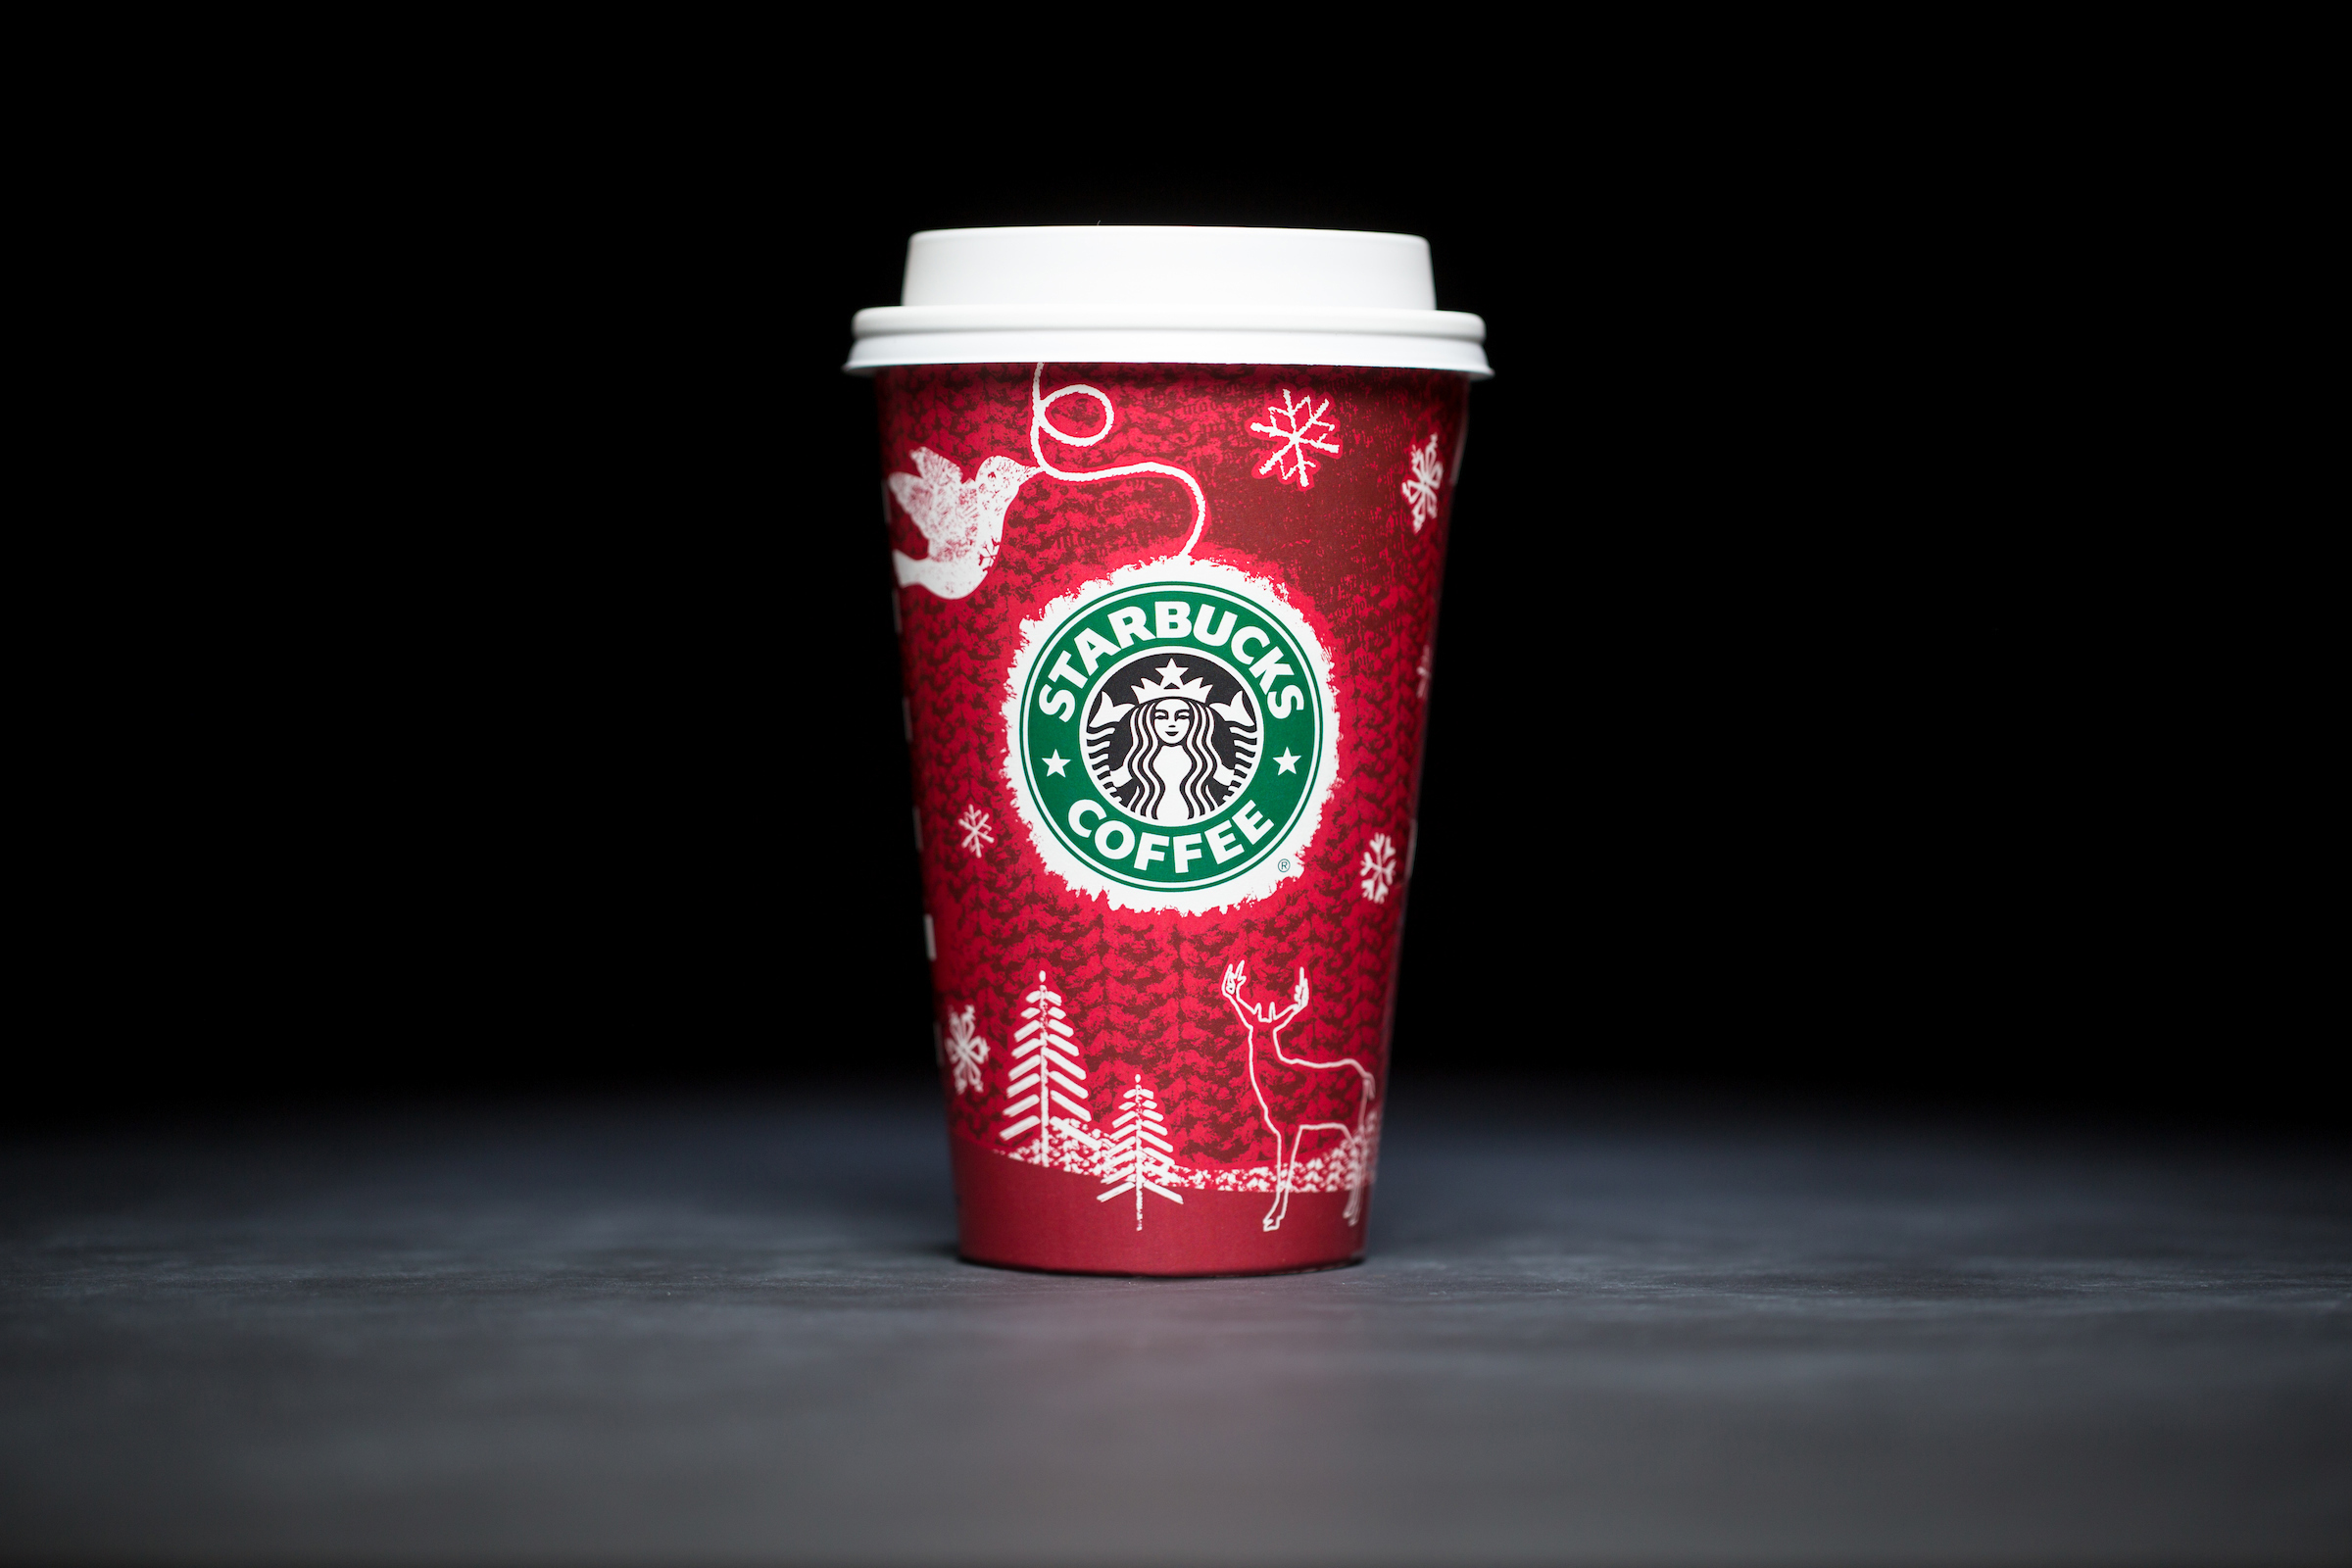 2008: For 20 years, Starbucks have released a range of holiday cup designs, most of them based around their world famous red cup. It's not easy to find the very first Starbucks holiday cups, which made their debut in stores in 1997. Few were saved, and electronic design files were lost in an earthquake in 2001. Even an Internet search is unyielding, with the cups having made their arrival long before the first selfie. But, we have them here! Click on for a photos of all 20 holidays cup designs. (Image: Joshua Trujillo/Cover Images)